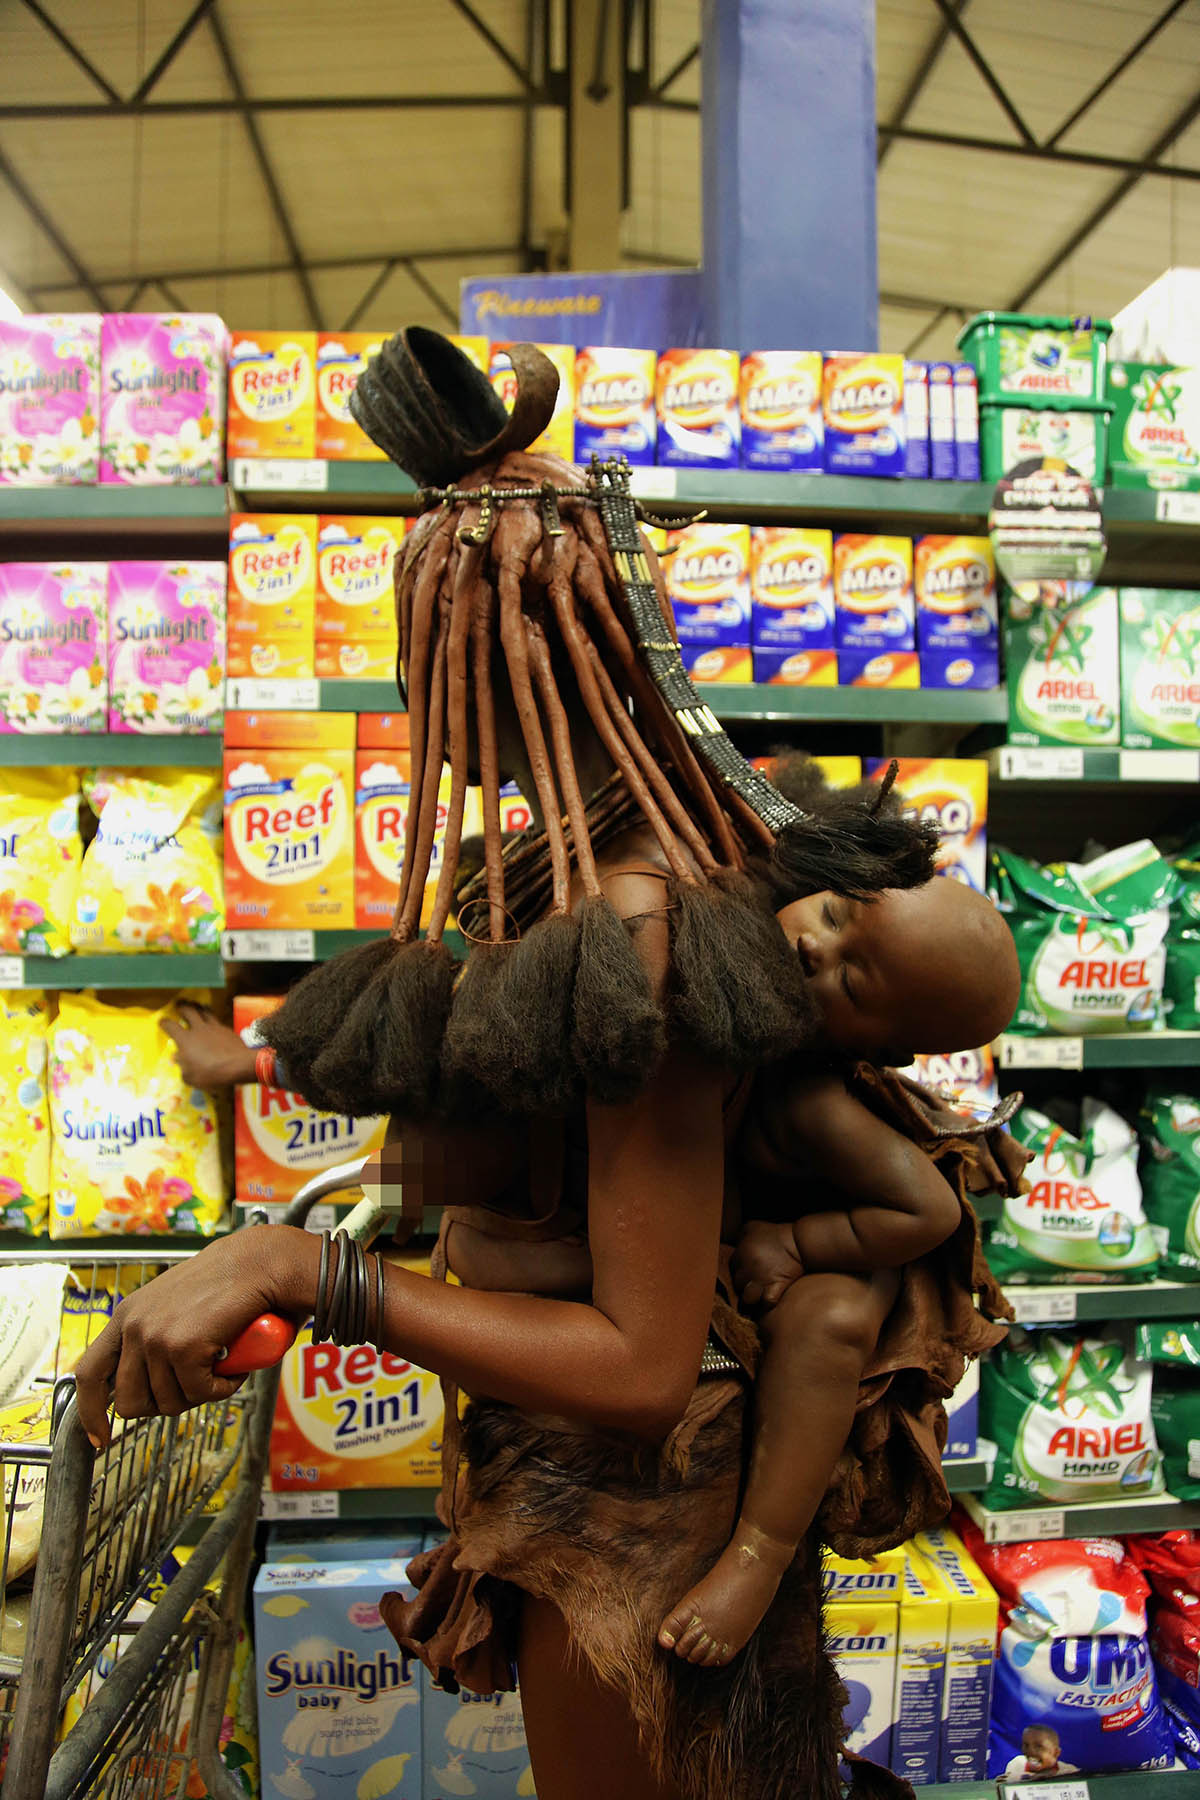 PIC BY BJORN PERSSON / CATERS NEWS - (PICTURED: A female member of the Himba Tribe and her infant in a supermarket.) - These striking images show an elegant African tribeswoman in traditional dress and mud for sunscreen - checking out deals on washing powder. The woman, from the Himba tribe in Opuwo, Namibia, popped into her local grocery store to pick up a few of lifes essentials.Himba tribespeople lead a very traditional lifestyle, and so the photos reveal the very pervasive nature of globalisation. The lady, thought to be in her early twenties, was pictured by Swedish wildlife and documentary photographer Bjorn Persson. SEE CATERS COPY.